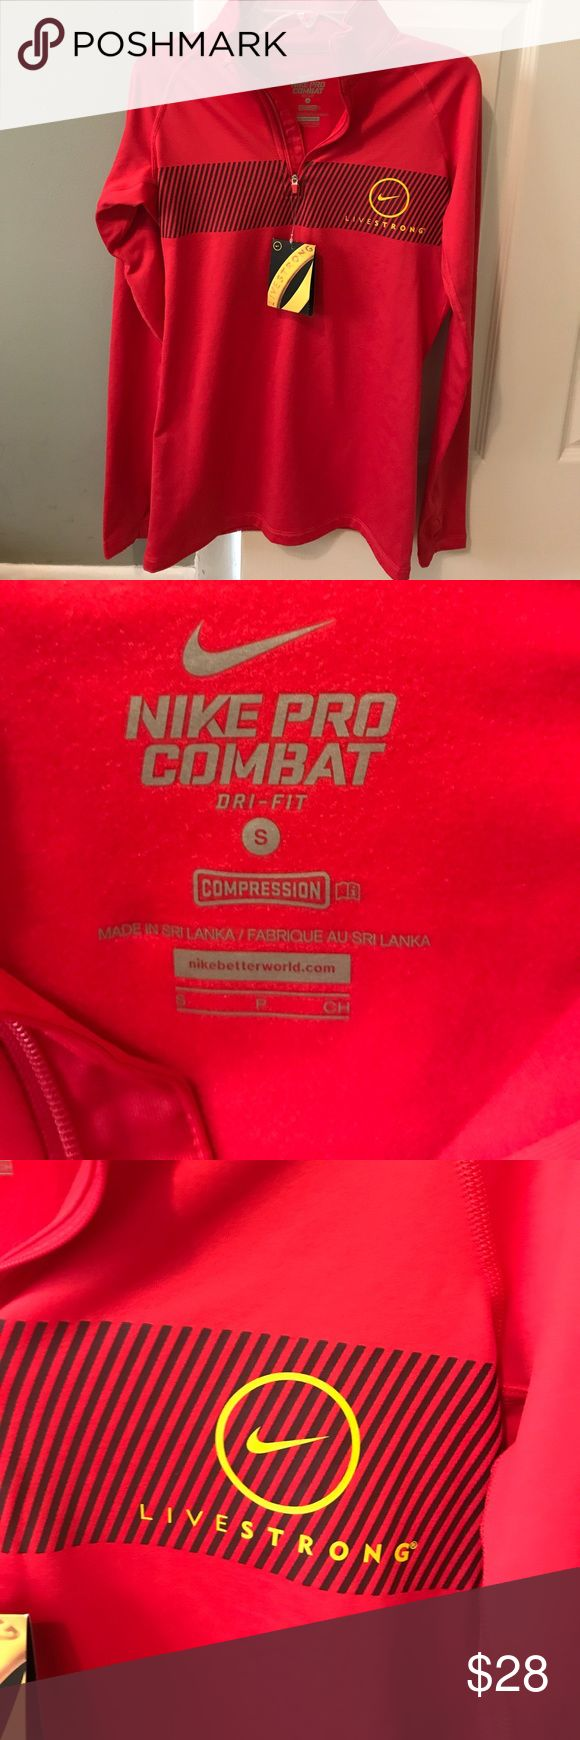 NWT woman's Nike Pro combat live strong zip jacket NWT woman's red Nike livestrong combat half zip jacket 88% polyester 12% spandex inside of zip up is very soft and comfortable perfect for working out or hanging around!!! LIVESTRONG!! Size small Nike Jackets & Coats